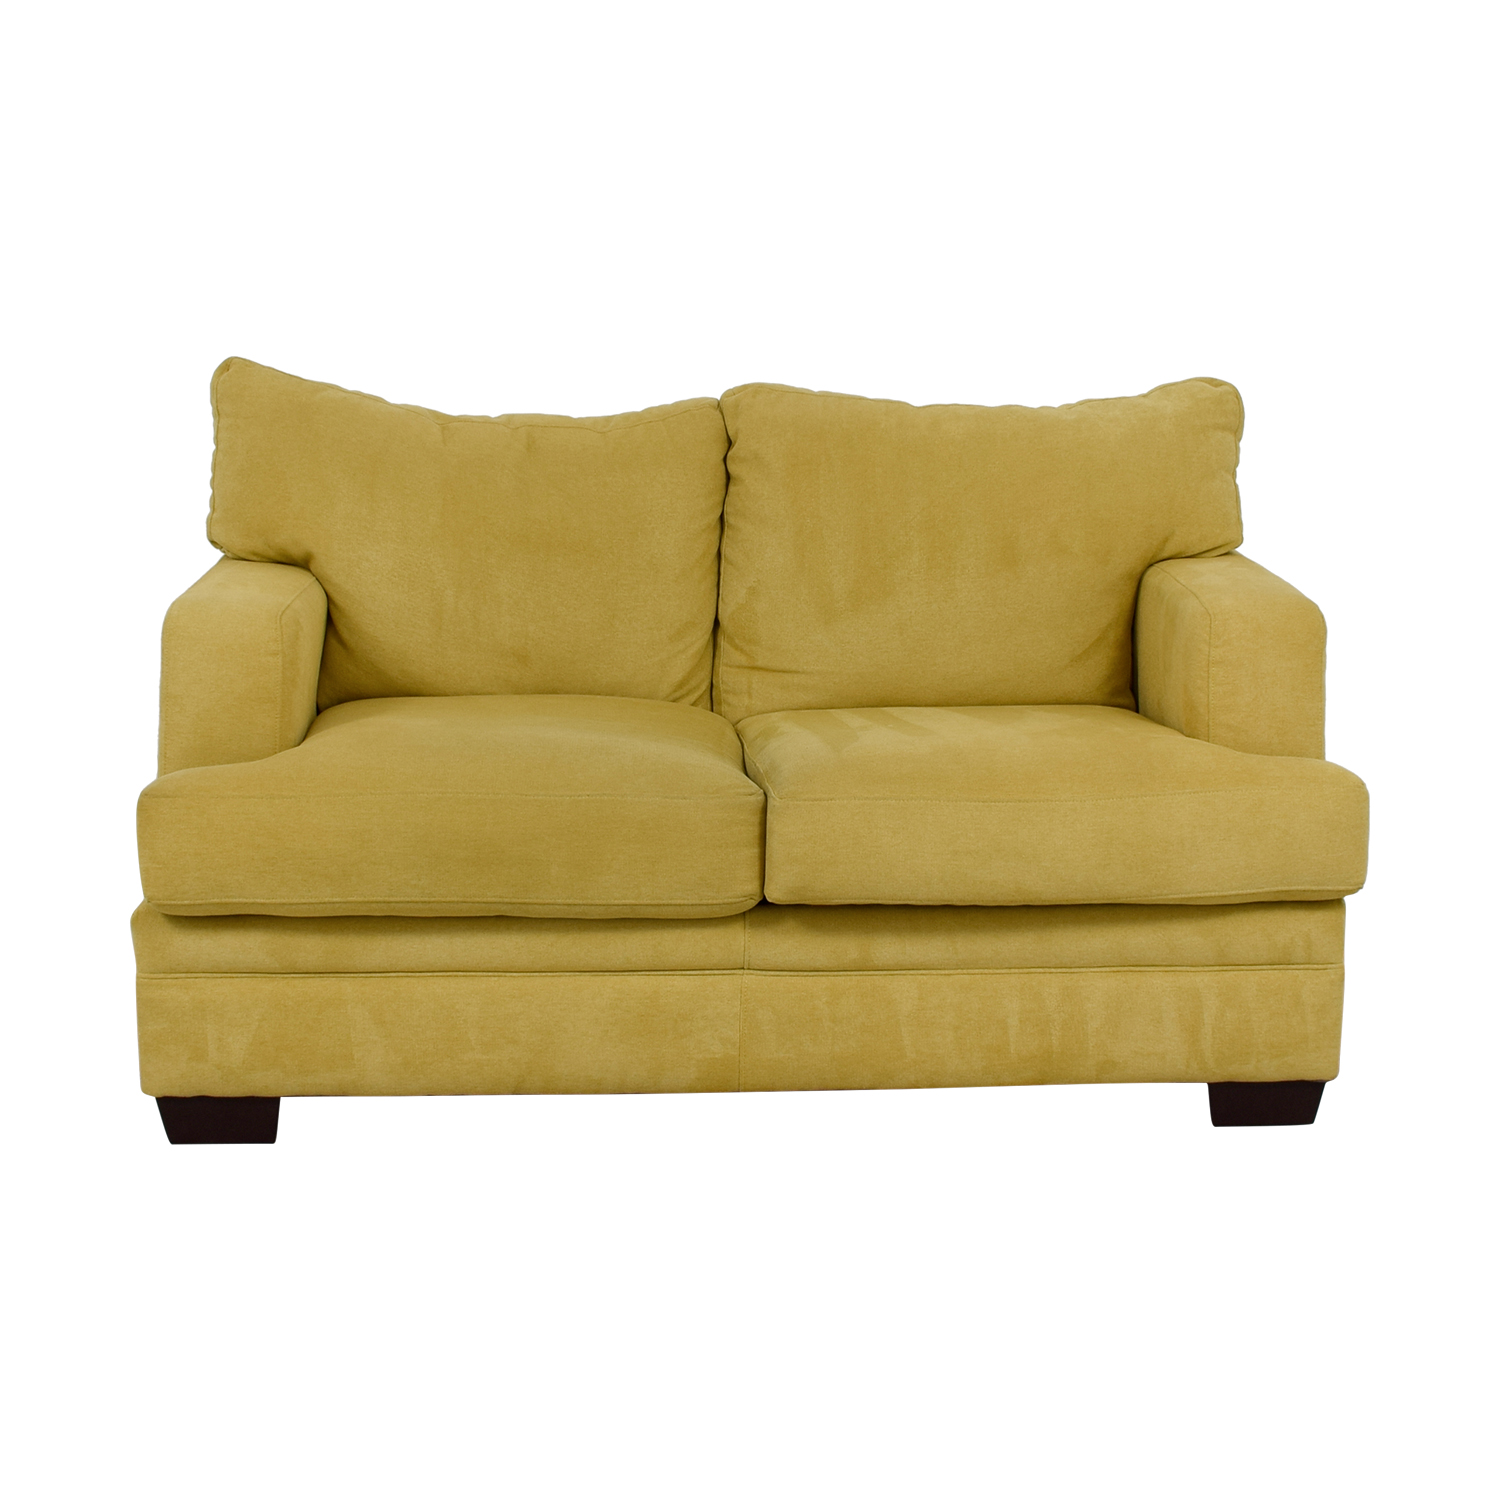 jennifer convertible sofas on sale rory microfiber queen sleeper sofa loveseats used for